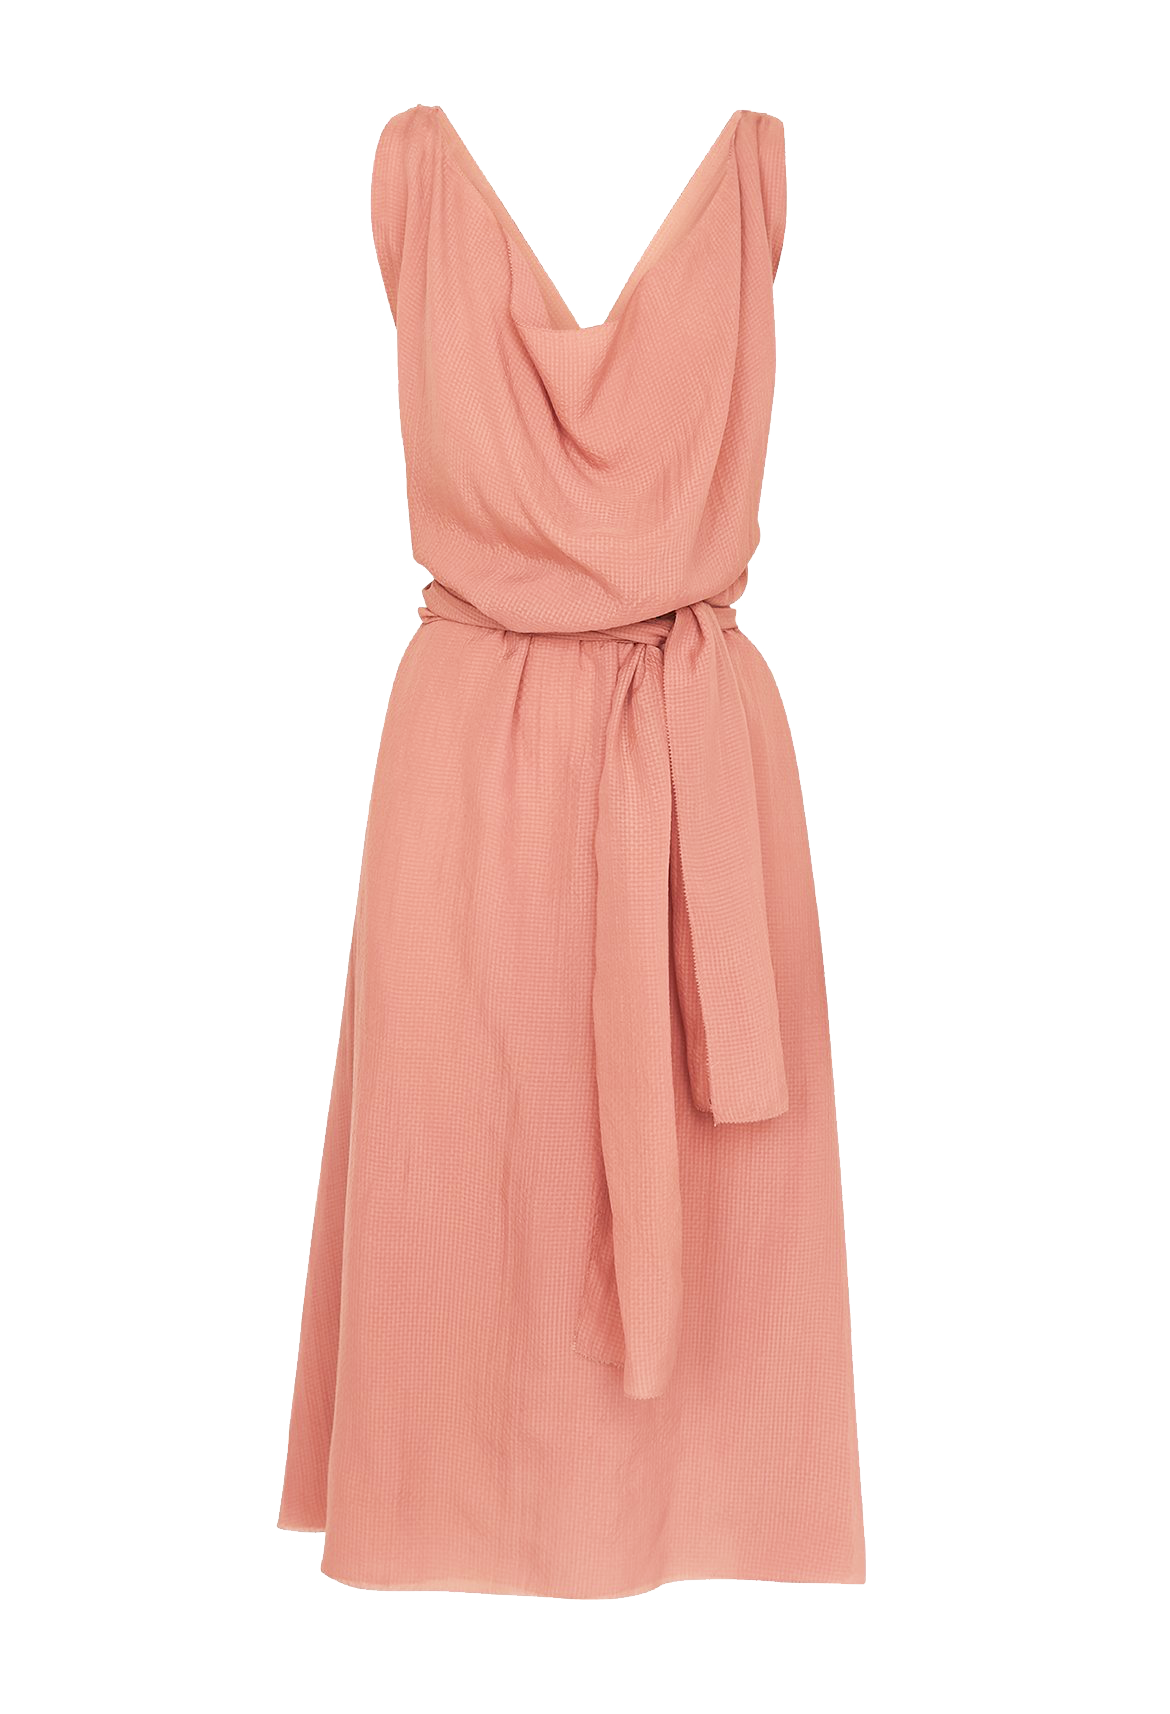 Blush Waterfall Dress